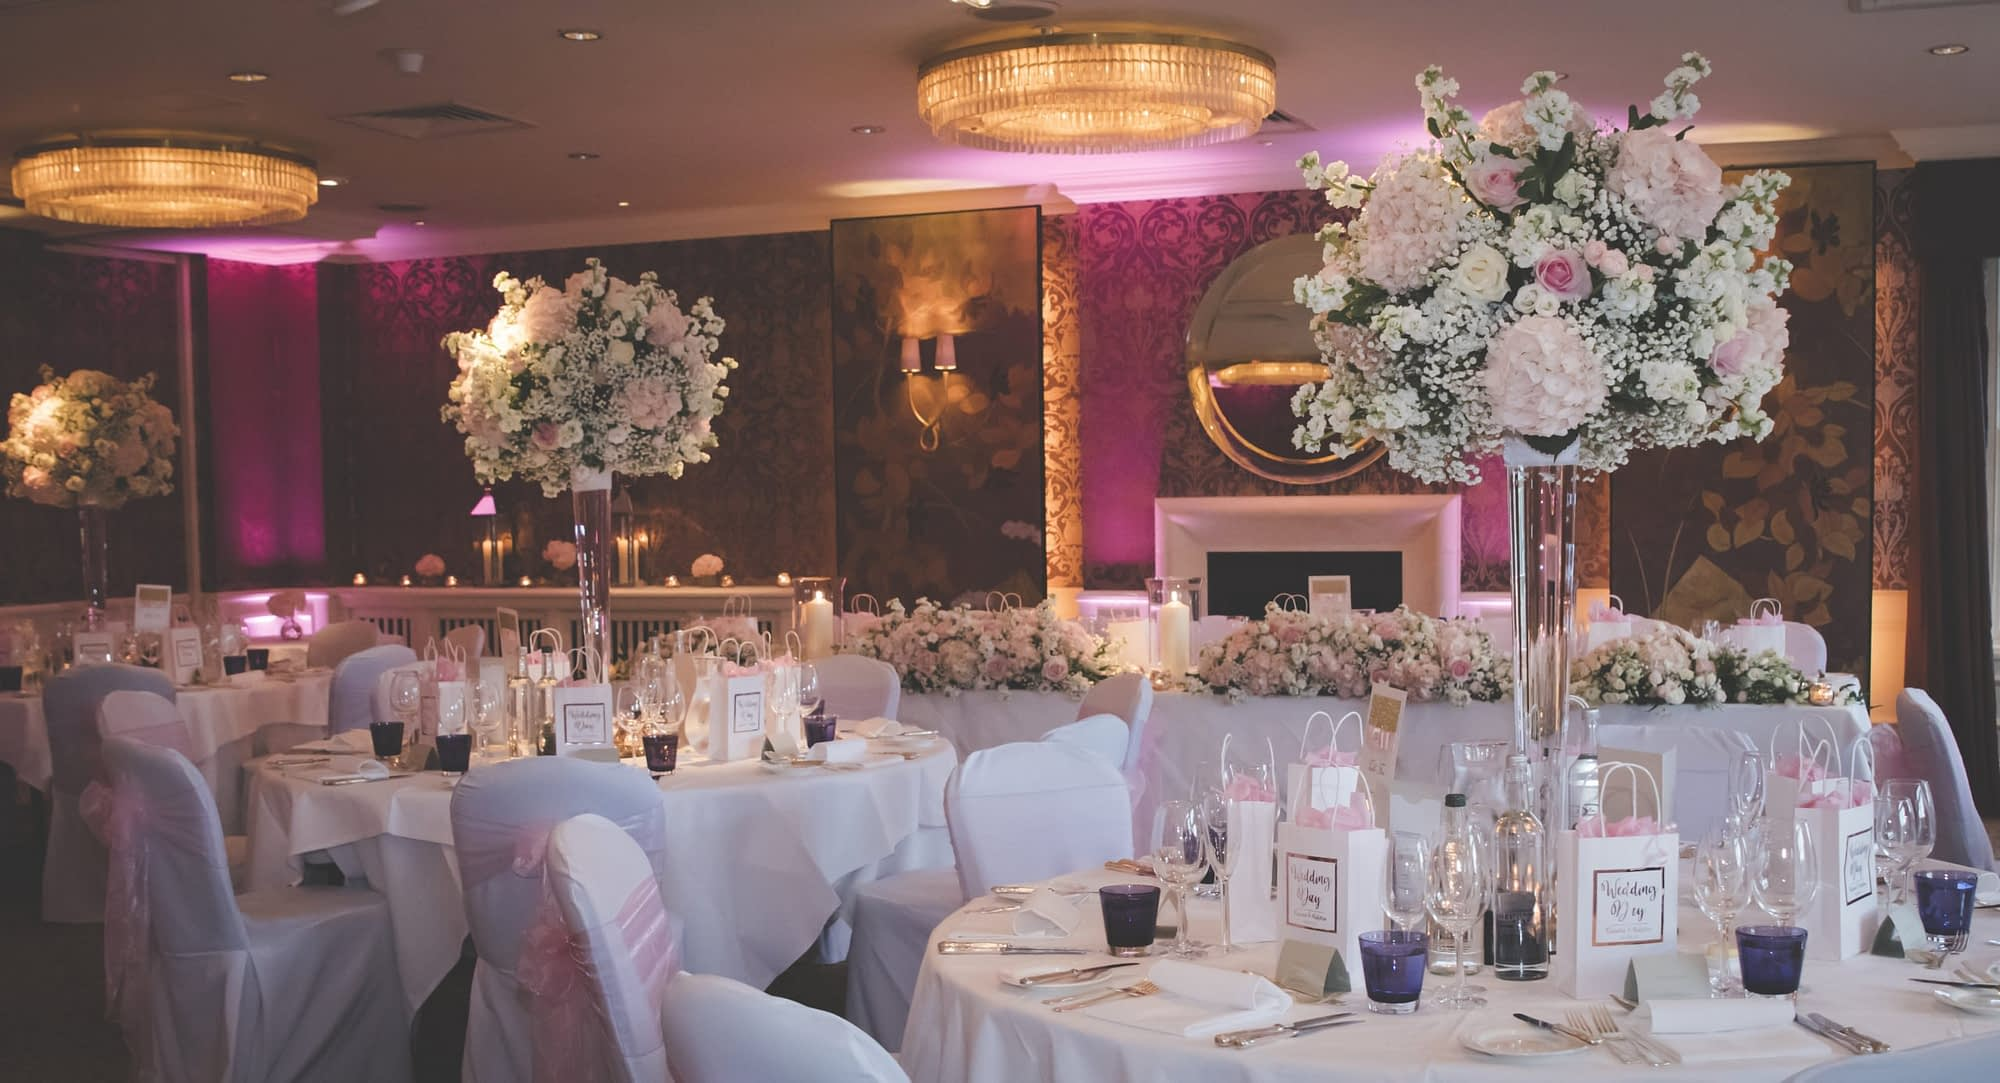 wedding reception room decorated with flowers